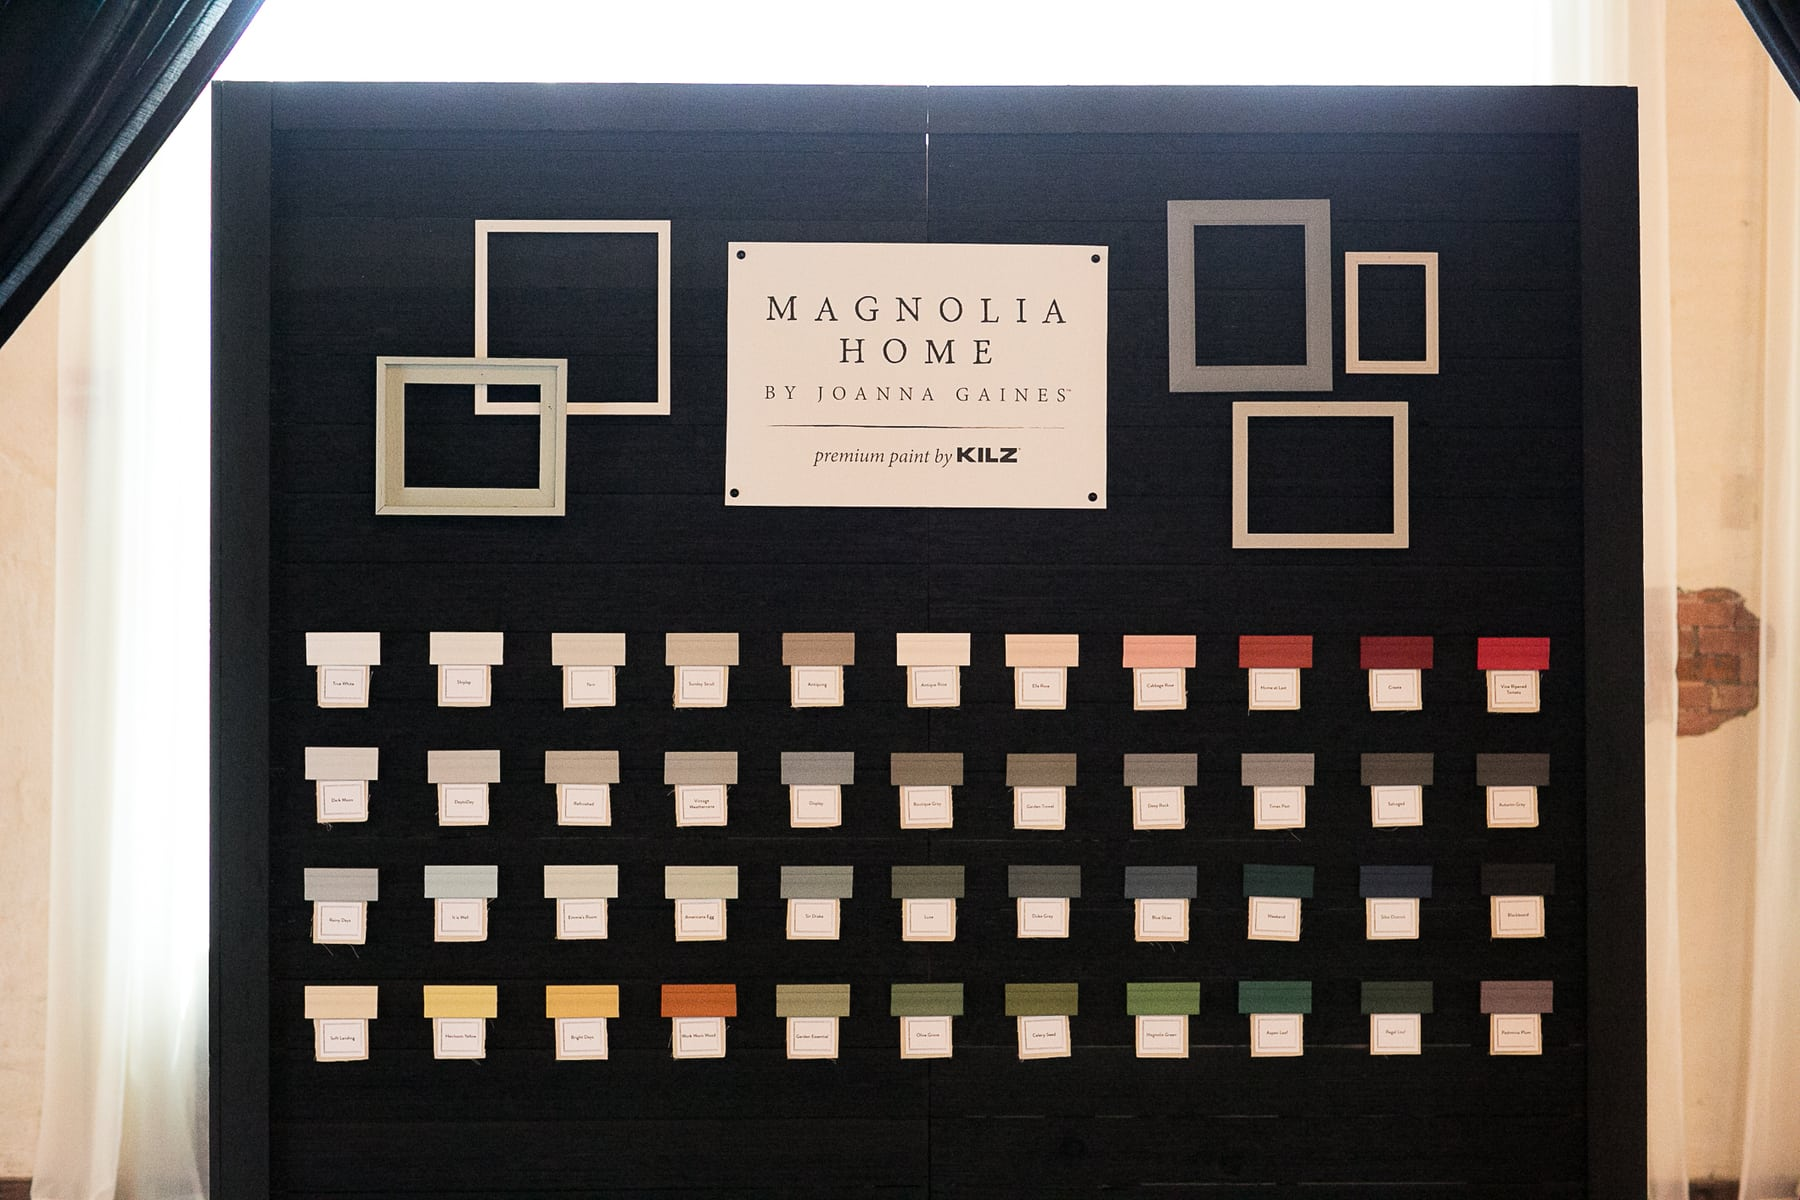 A Board of all the different chalk paint samples by Magnolia Home